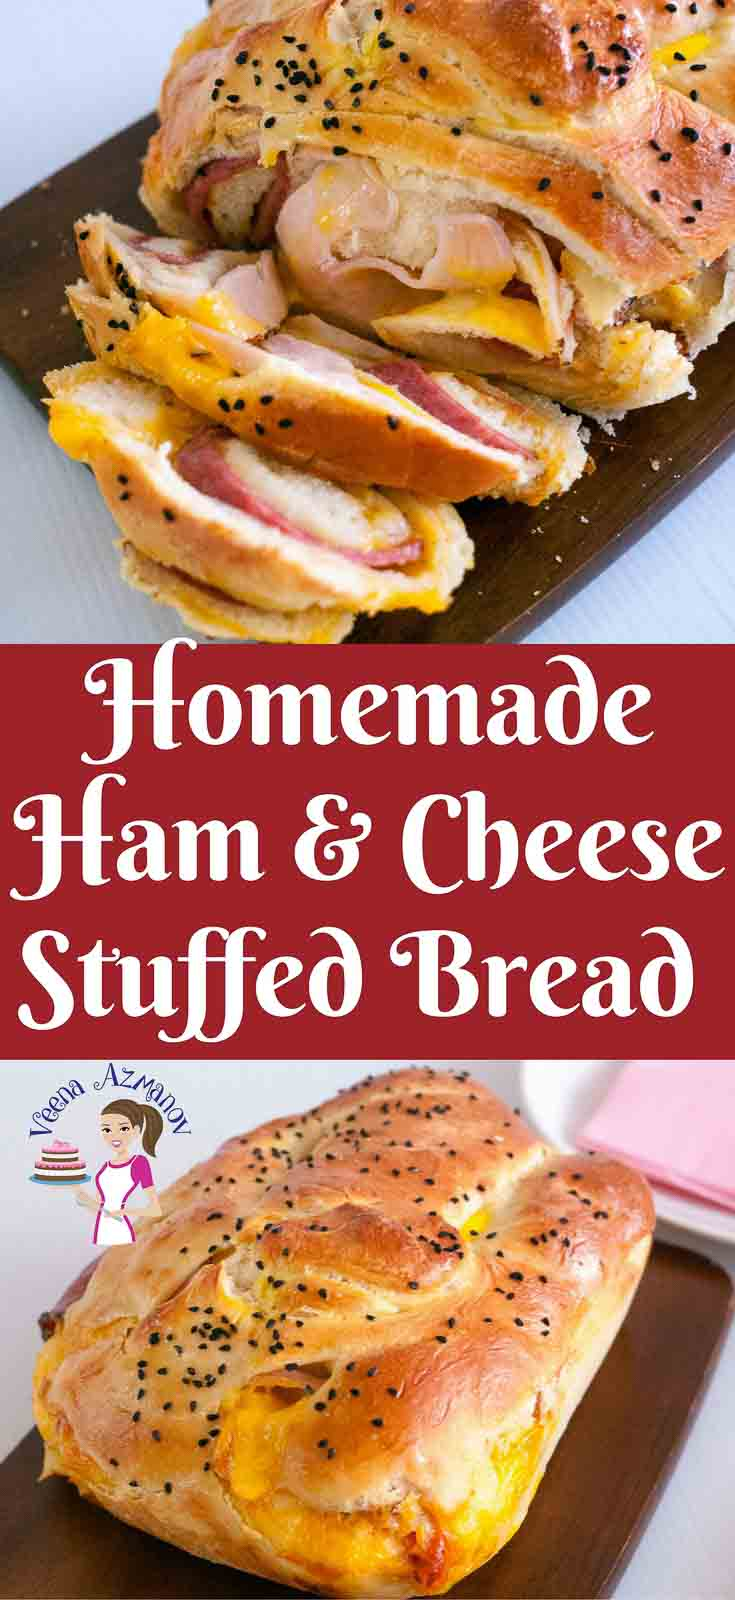 Homemade Ham And Cheese Stuffed Bread Recipe Veena Azmanov